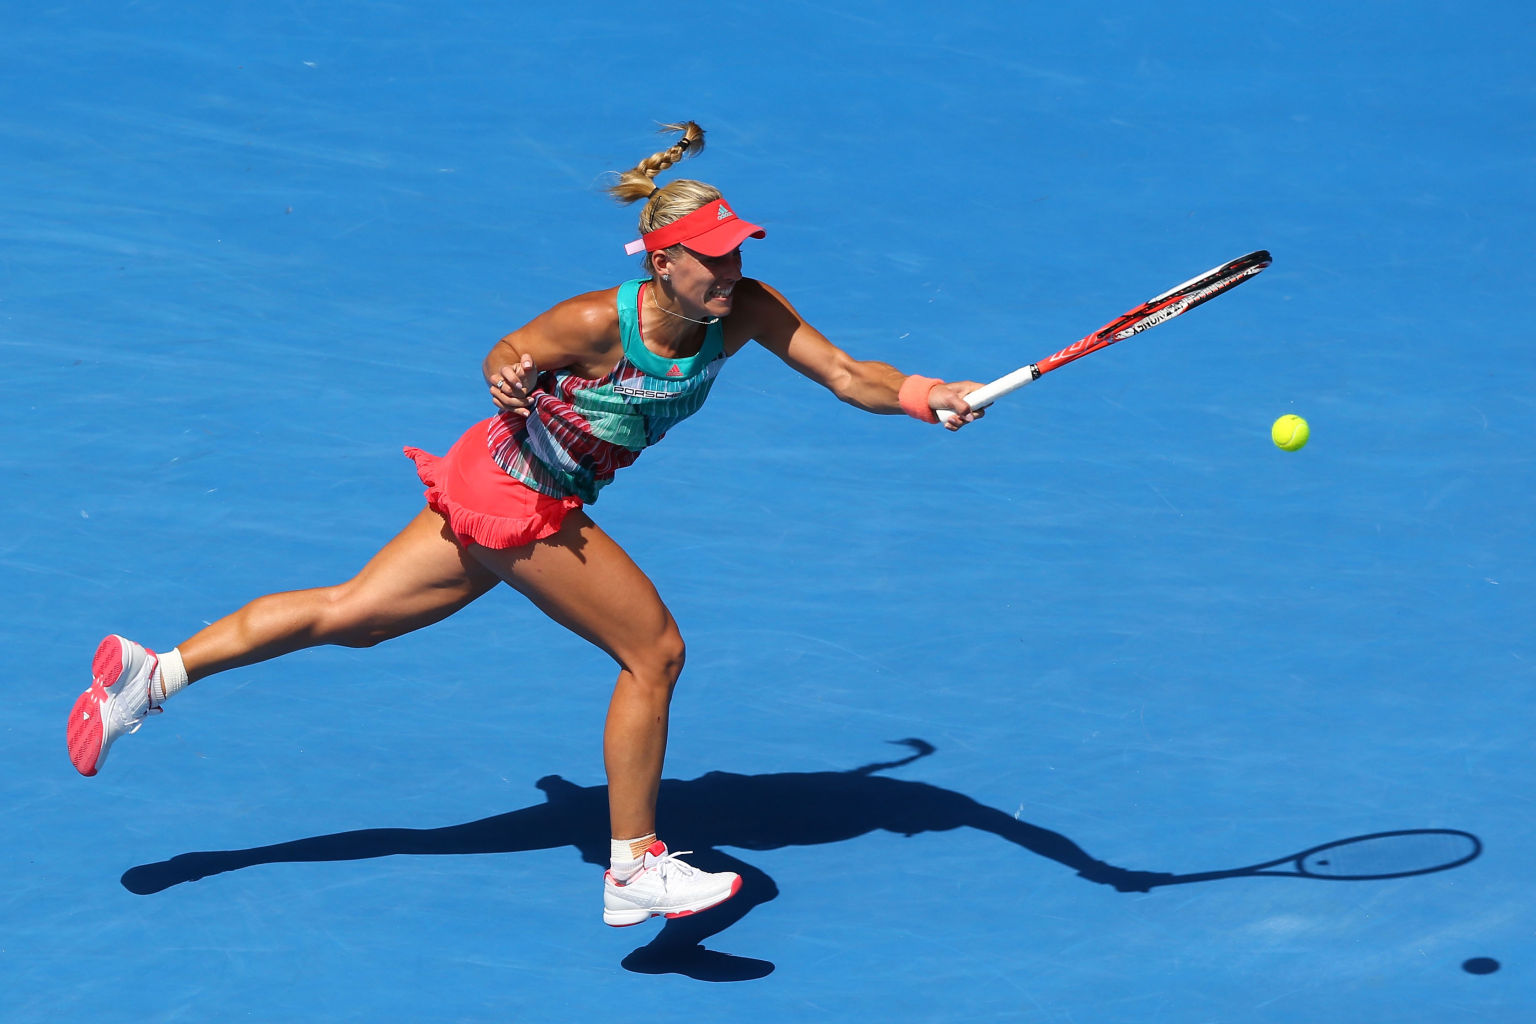 MELBOURNE, AUSTRALIA - JANUARY 27:  Angelique Kerber of Germany plays a forehand in her quarter final match against Victoria Azarenka of Belarus during day 10 of the 2016 Australian Open at Melbourne Park on January 27, 2016 in Melbourne, Australia.  (Photo by Michael Dodge/Getty Images)